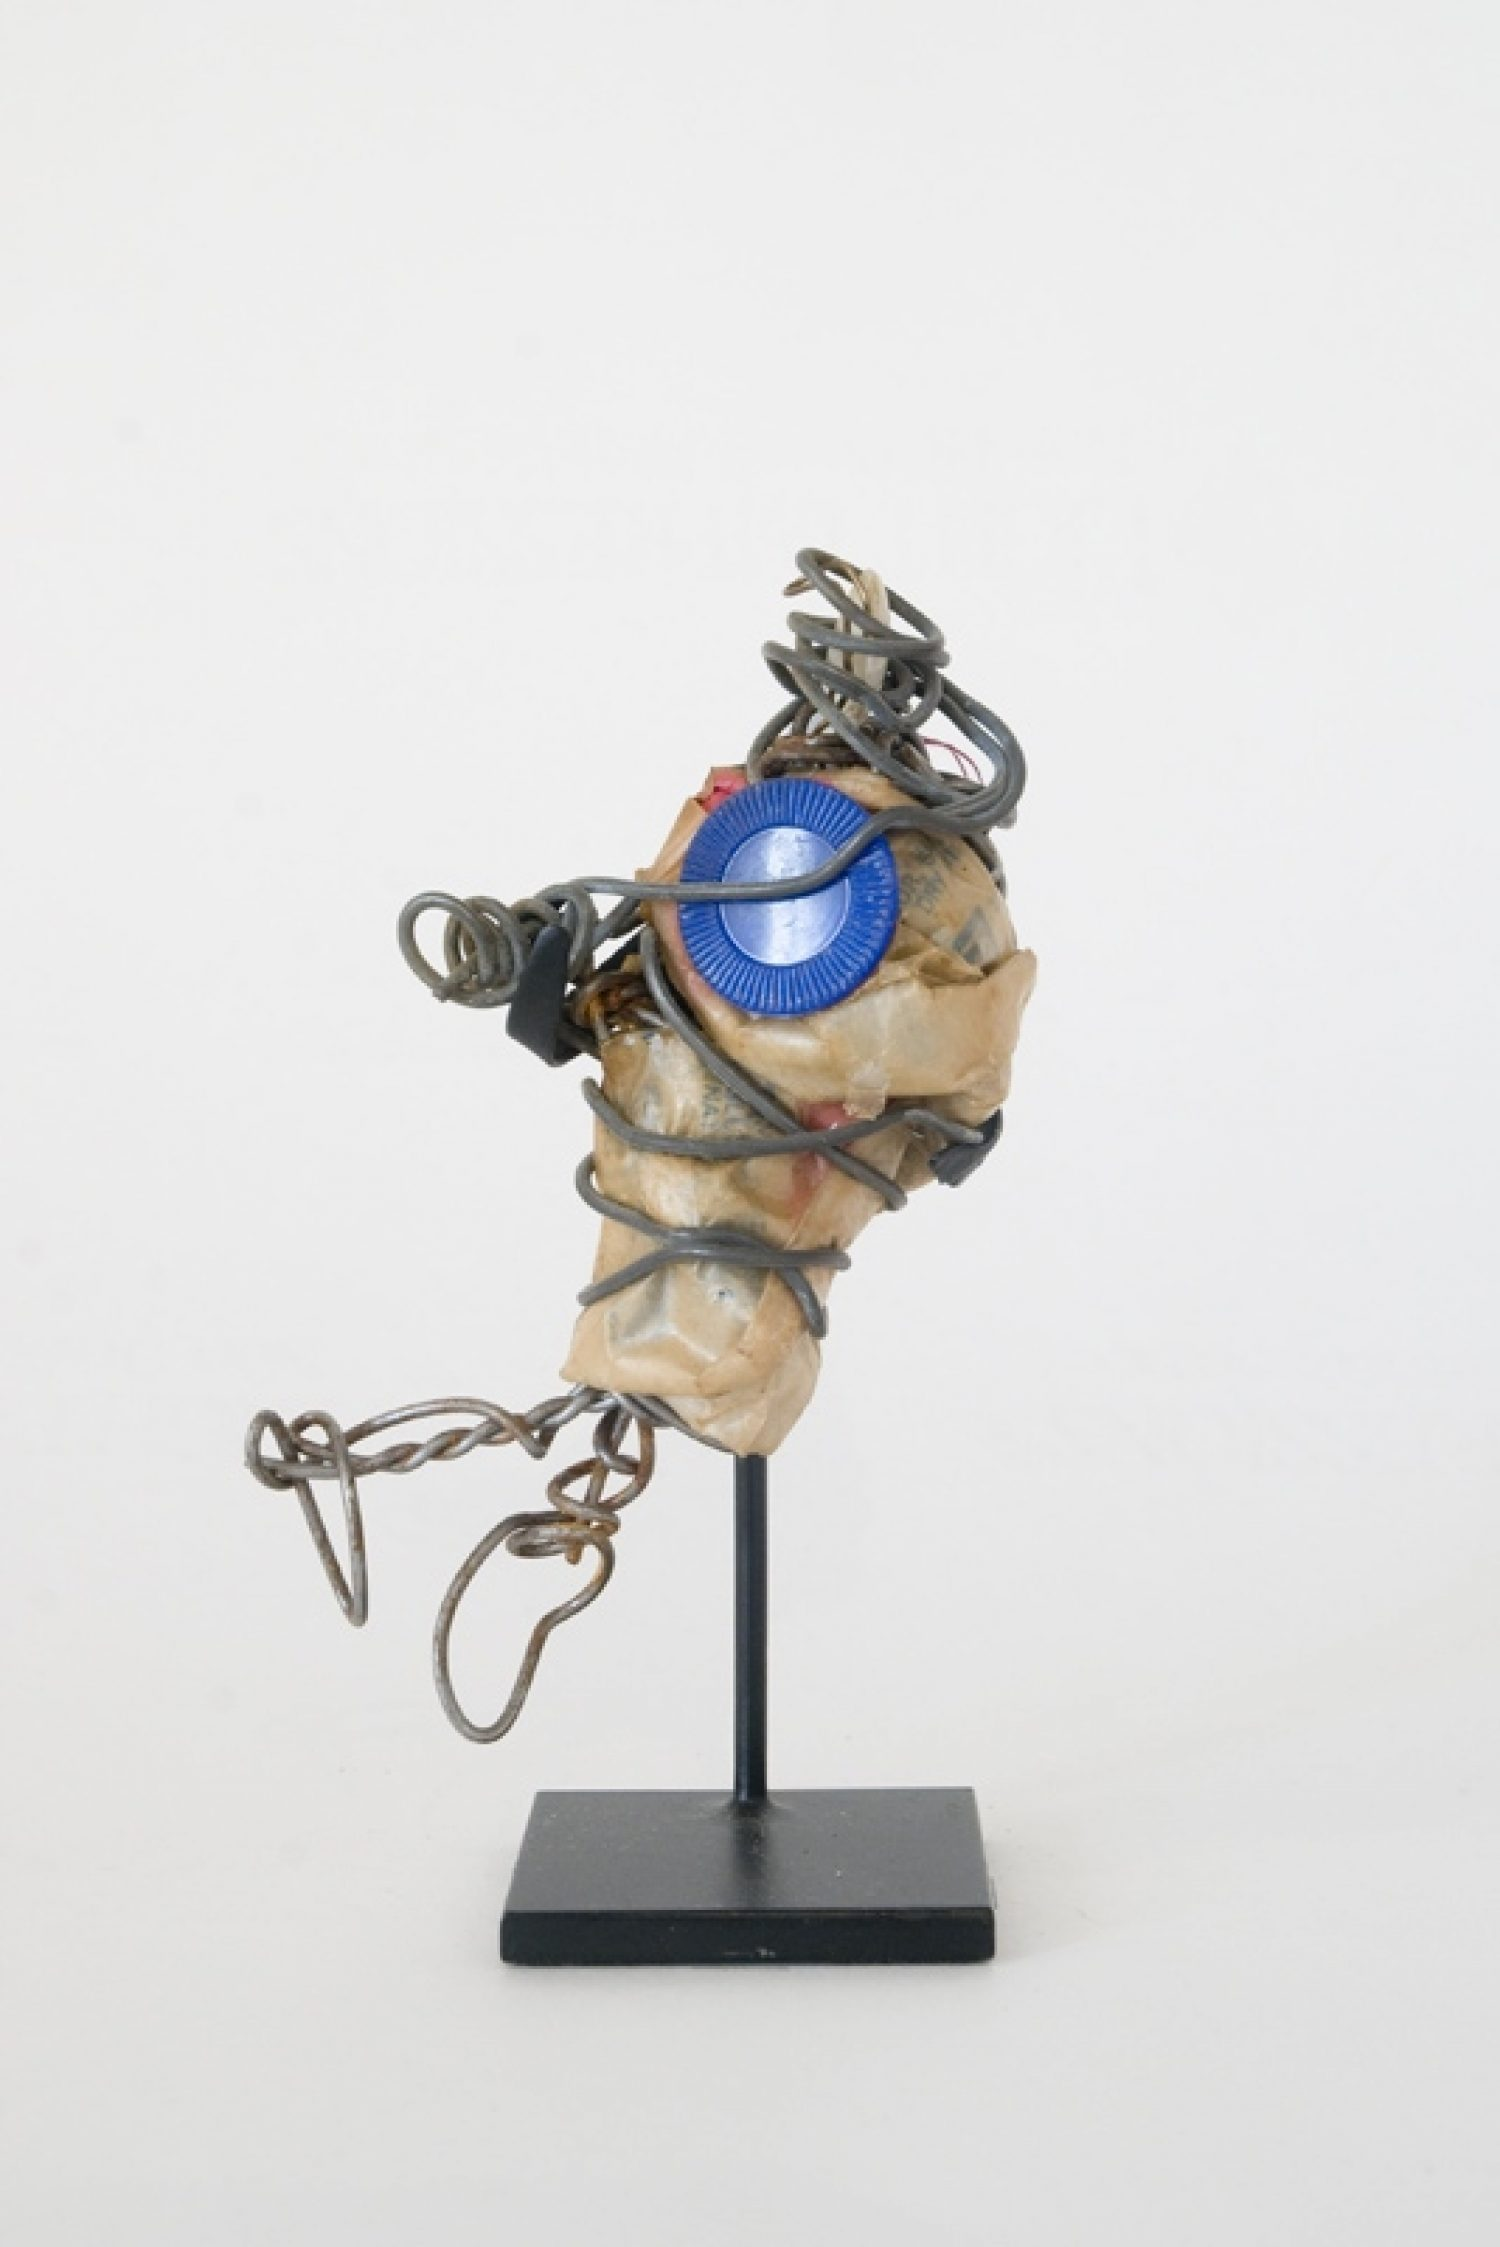 Philadelphia Wireman Untitled Blue Poker Chip C 1970–75